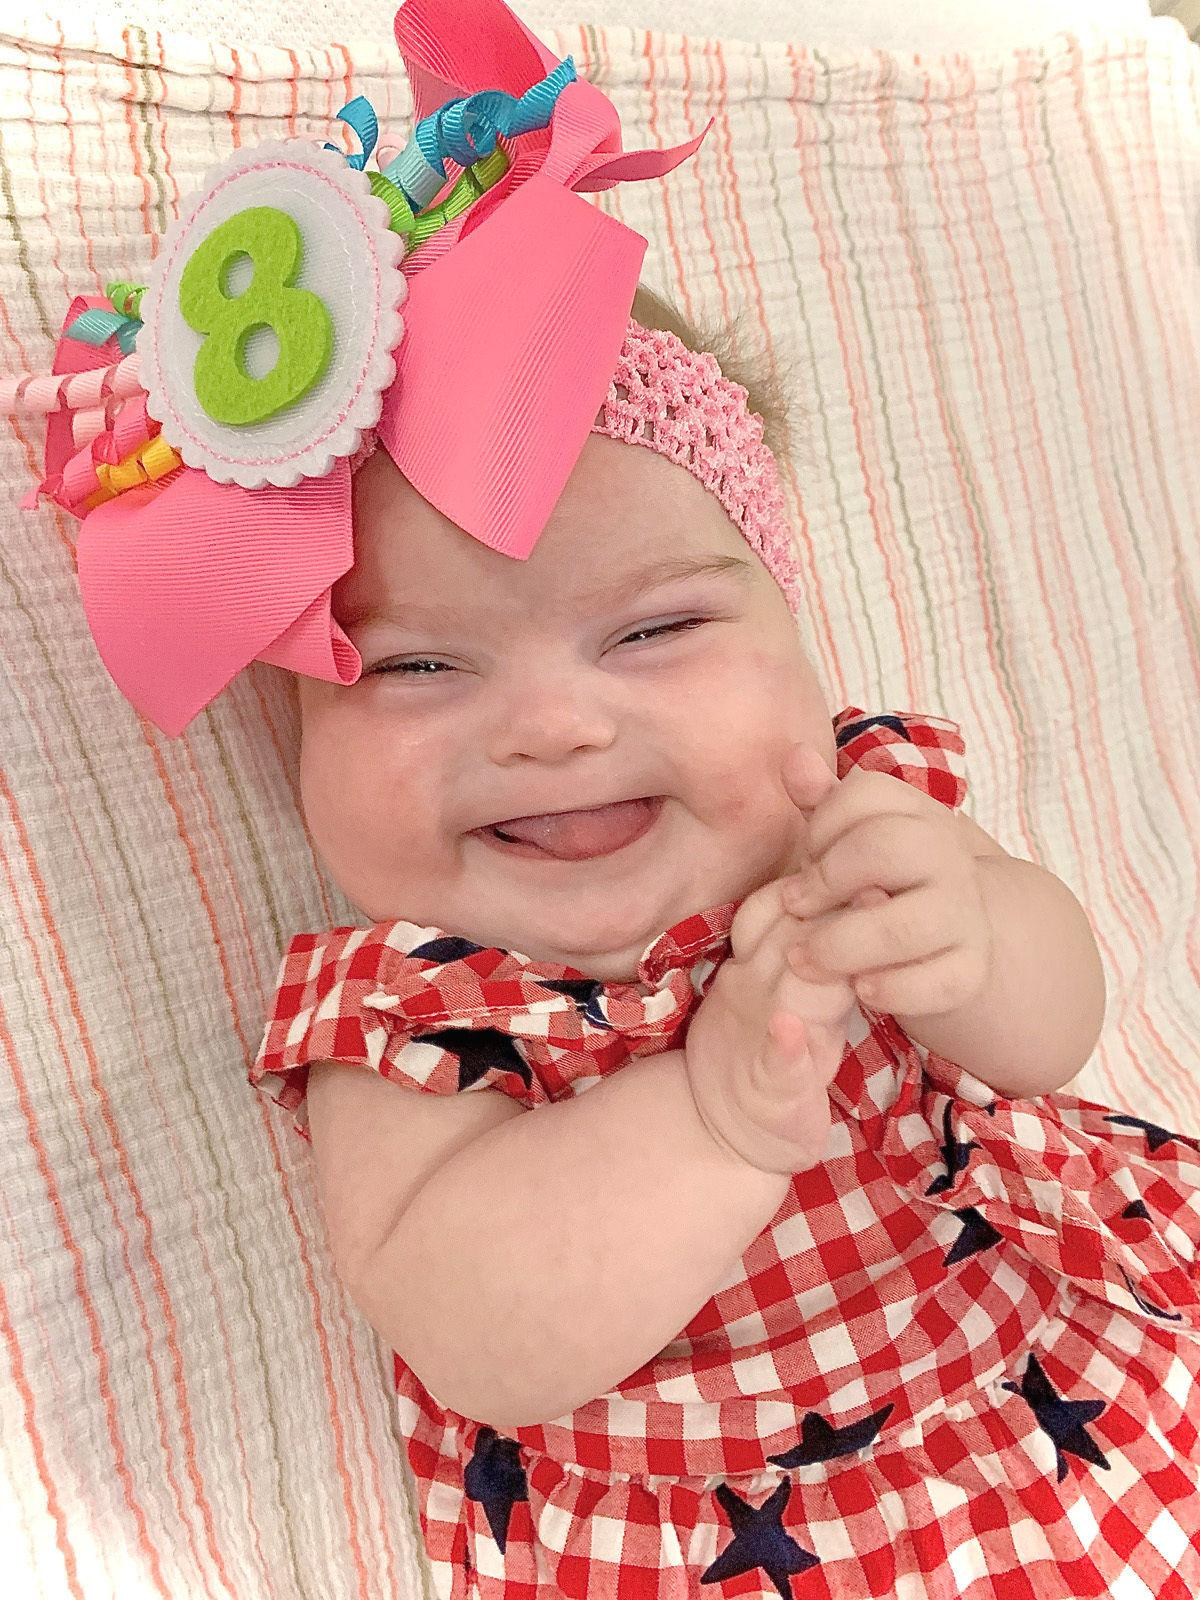 Infant home after heart transplant; doing 'extremely well'